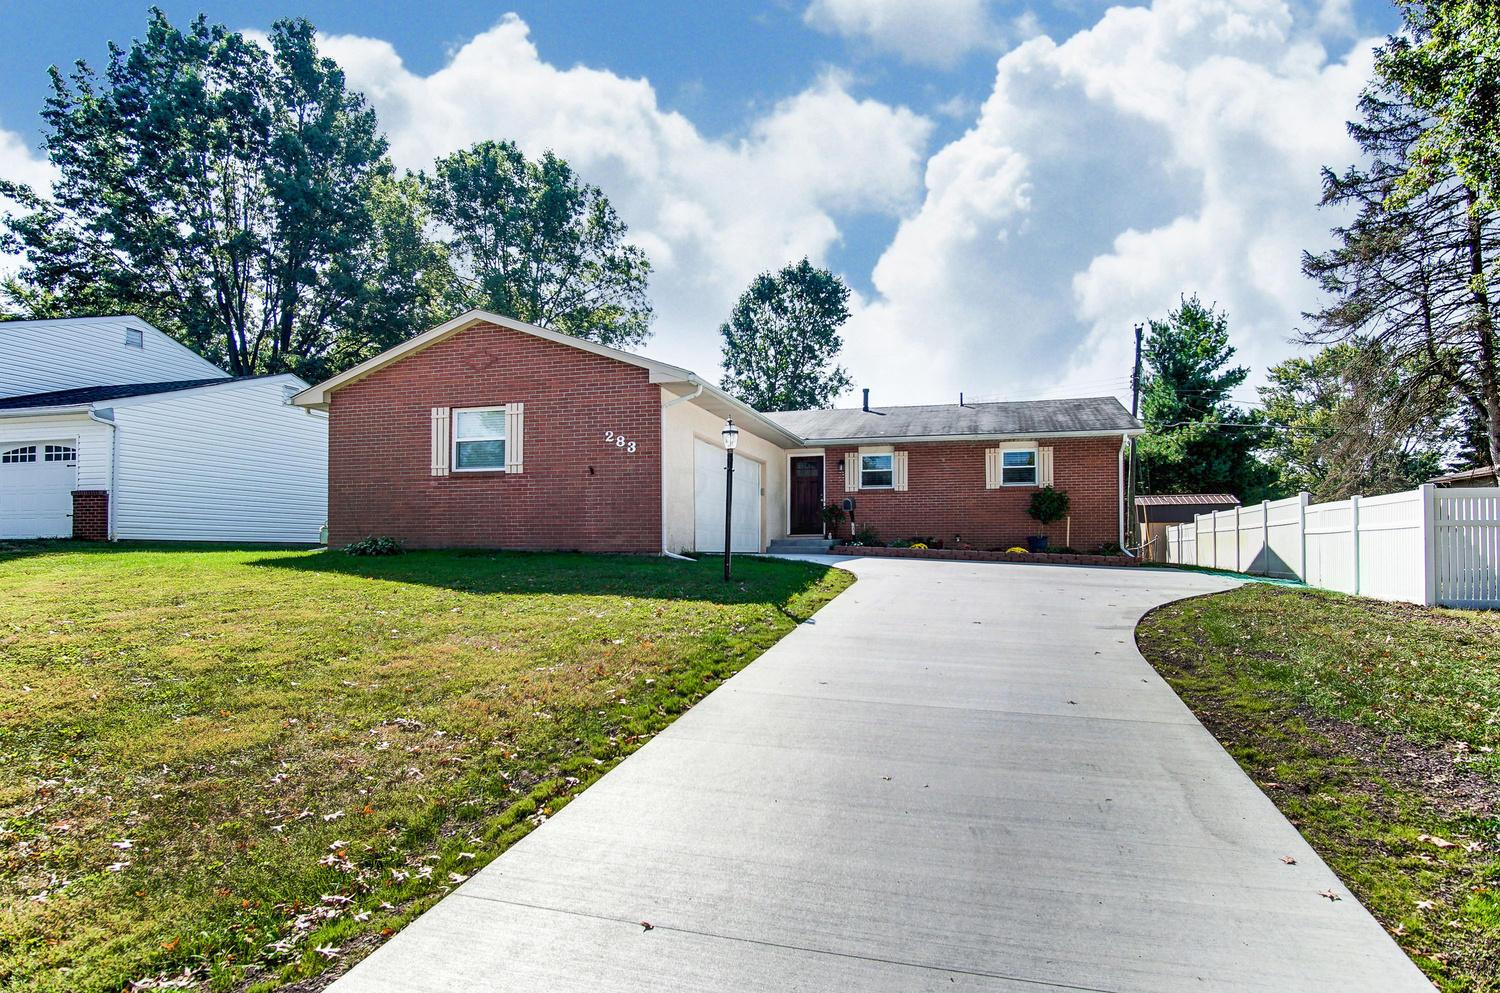 Photo of 283 Rocky Fork Drive N, Gahanna, OH 43230